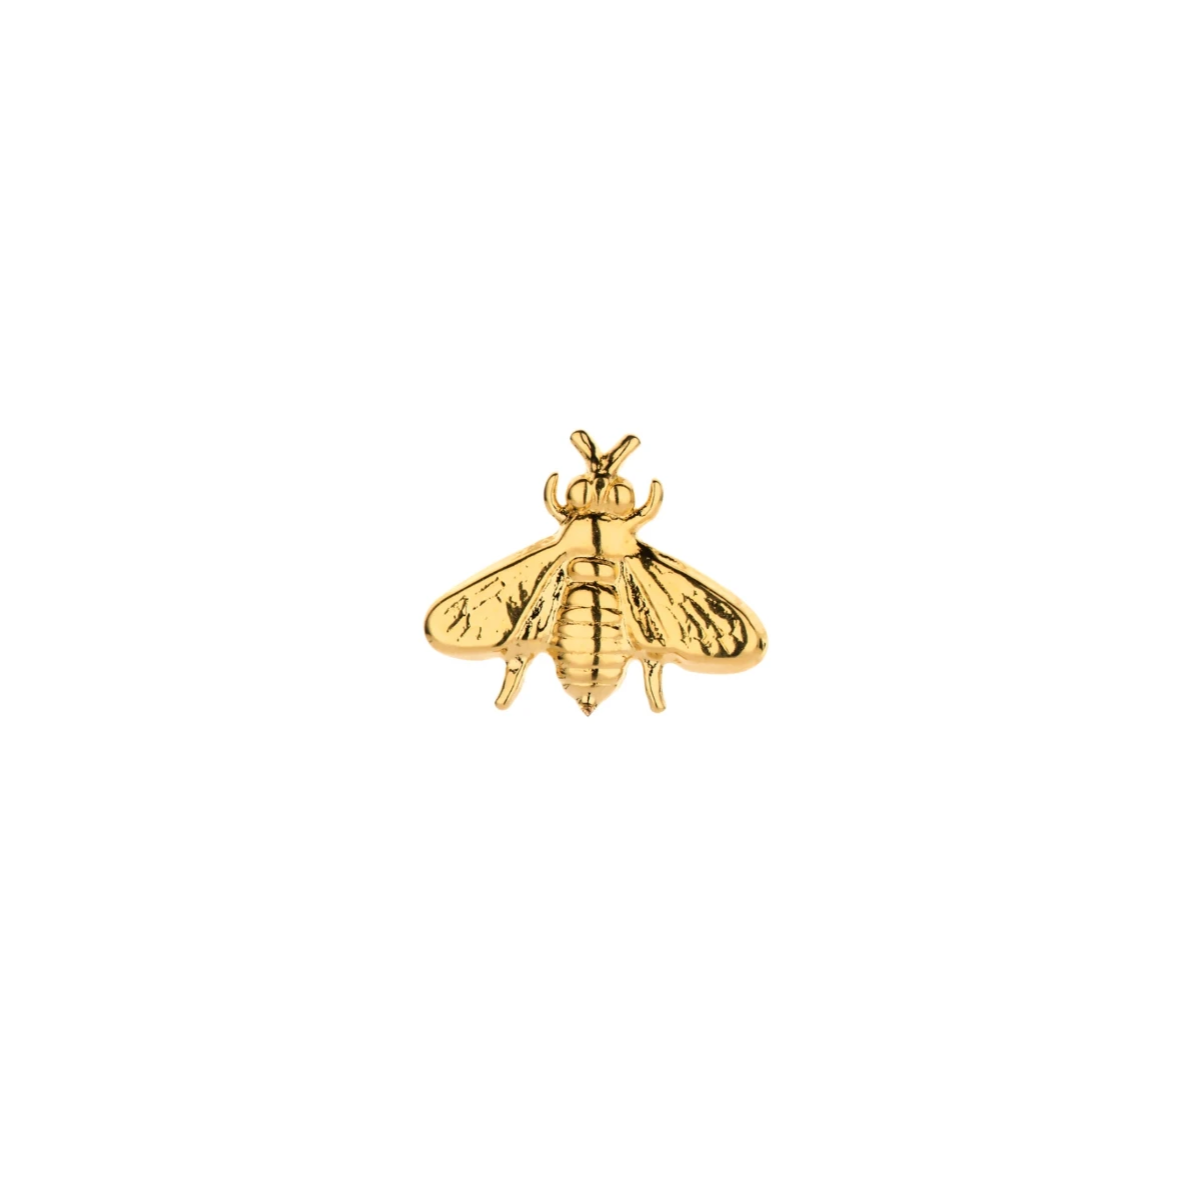 SINGLE Bee shortie gold earring - Souvenirs de Pomme